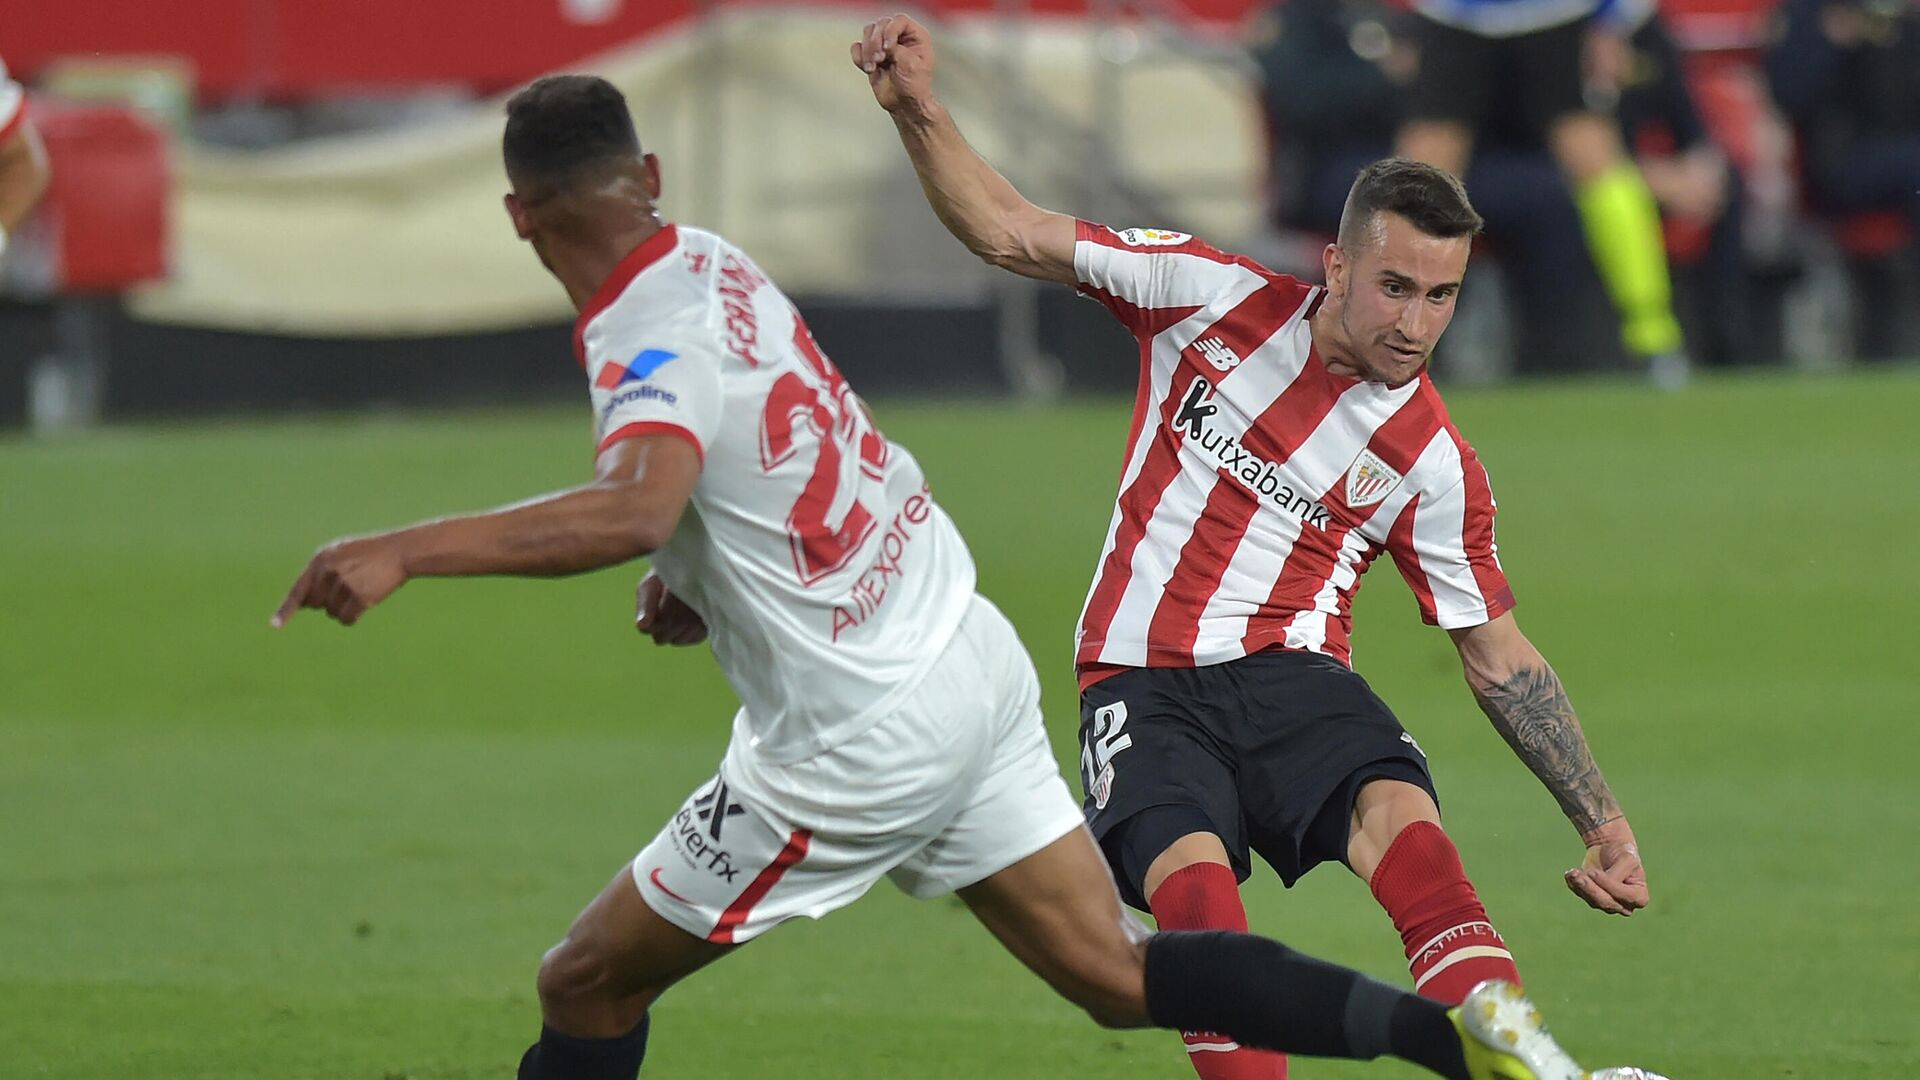 Athletic Bilbao's Spanish forward Alex Berenguer (R) fights for the ball with Sevilla's Brazilian midfielder Fernando during the Spanish League football match between Sevilla and Athletic Bilbao at the Ramon Sanchez Pizjuan stadium in Seville on May 3, 2021. (Photo by CRISTINA QUICLER / AFP) - РИА Новости, 1920, 04.05.2021